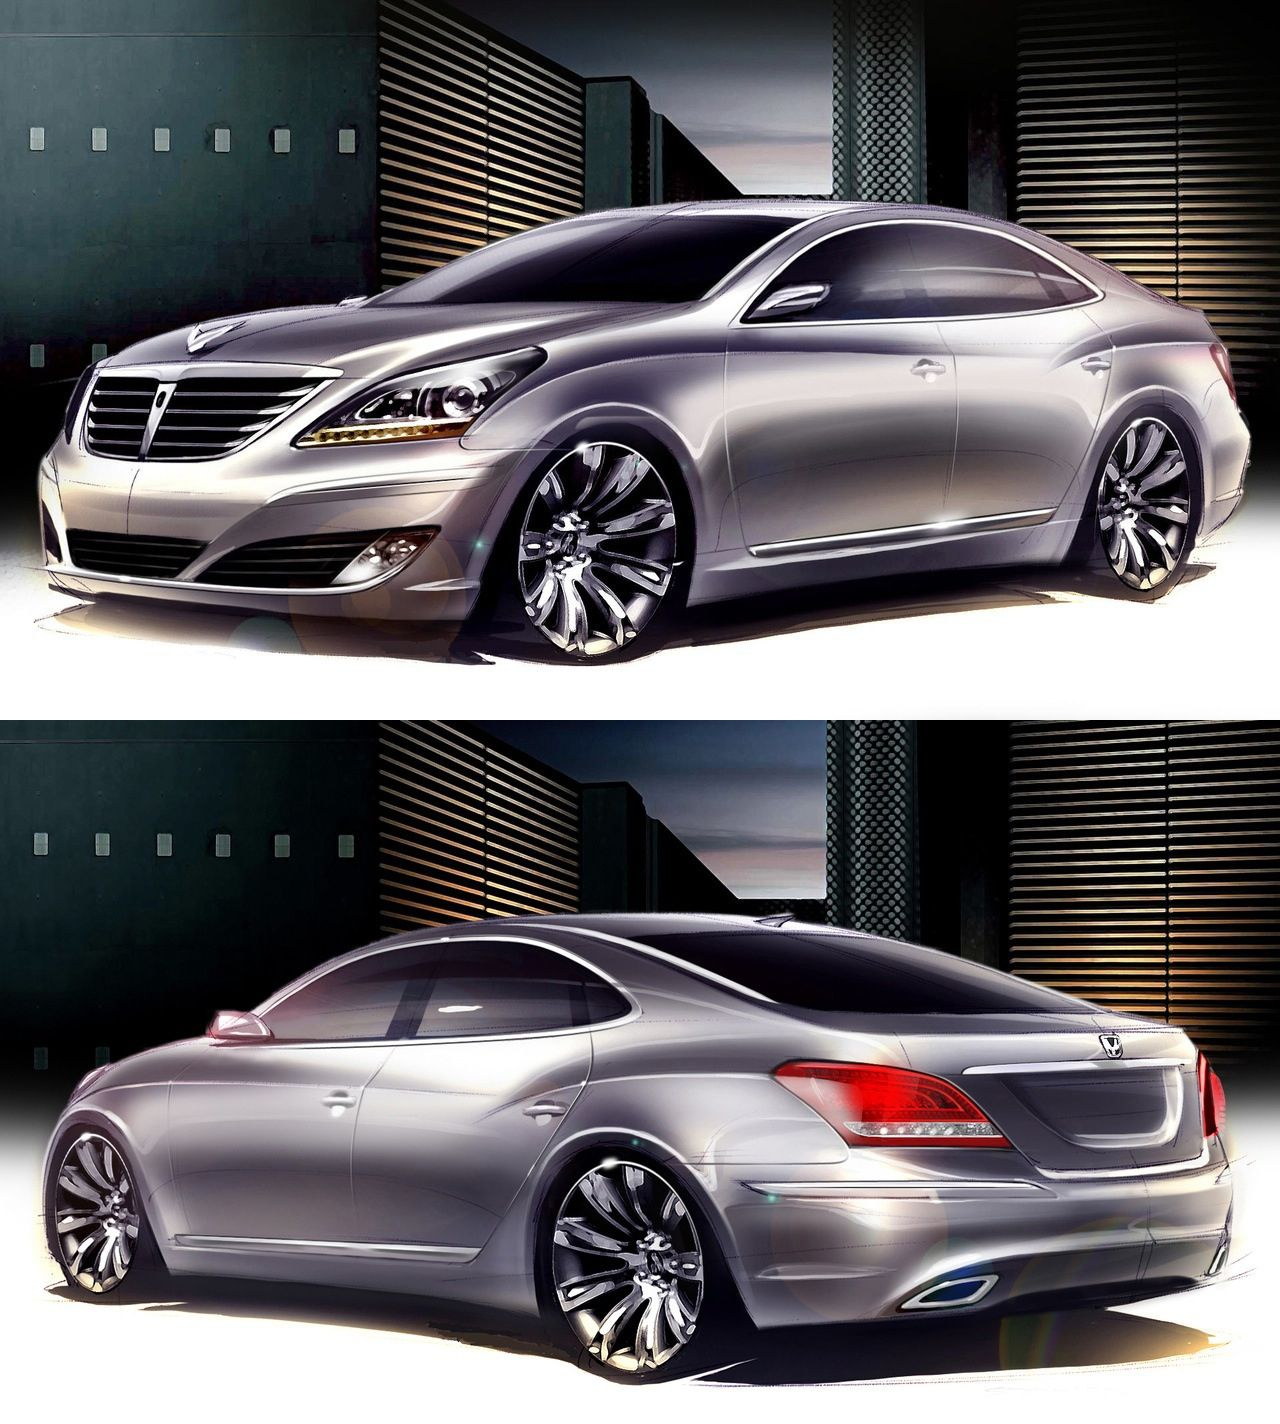 Pin By Lithia Nissan Hyundai Of Fresn On The Art Of Horsepower Dream Cars Concept Cars Hyundai Genesis Coupe